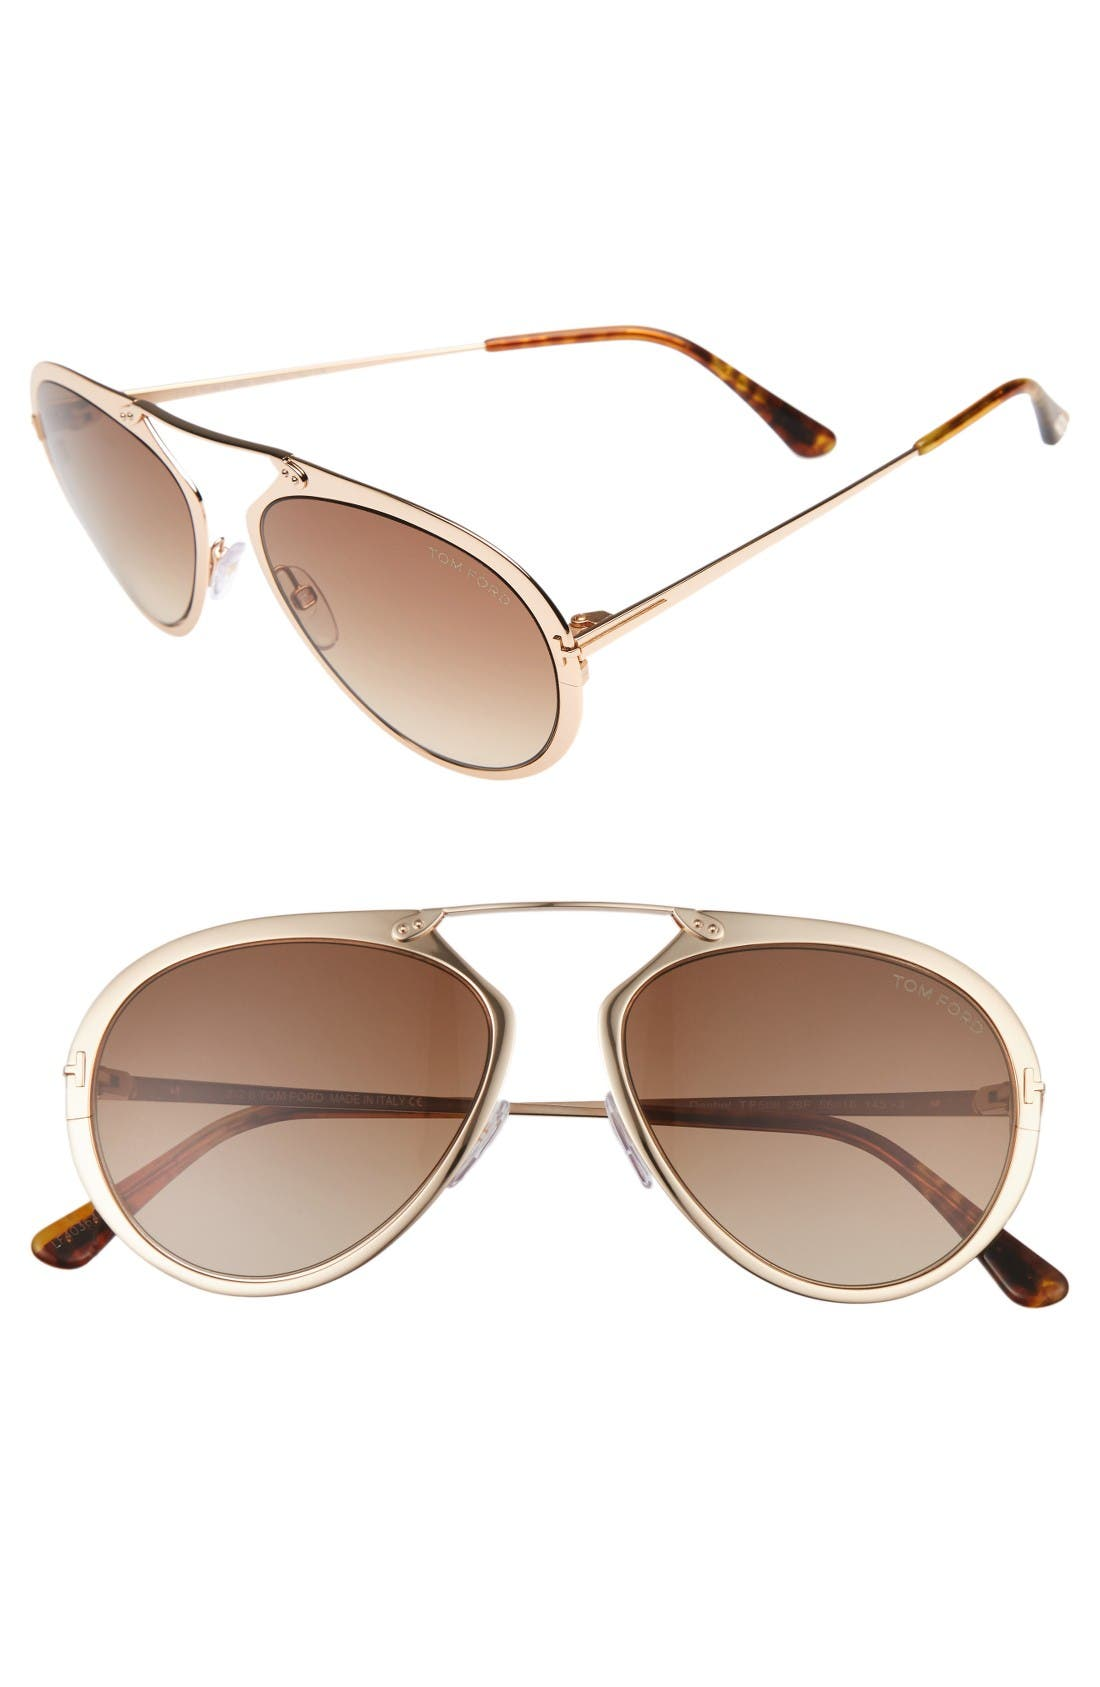 Alternate Image 1 Selected - Tom Ford Dashel 55mm Sunglasses